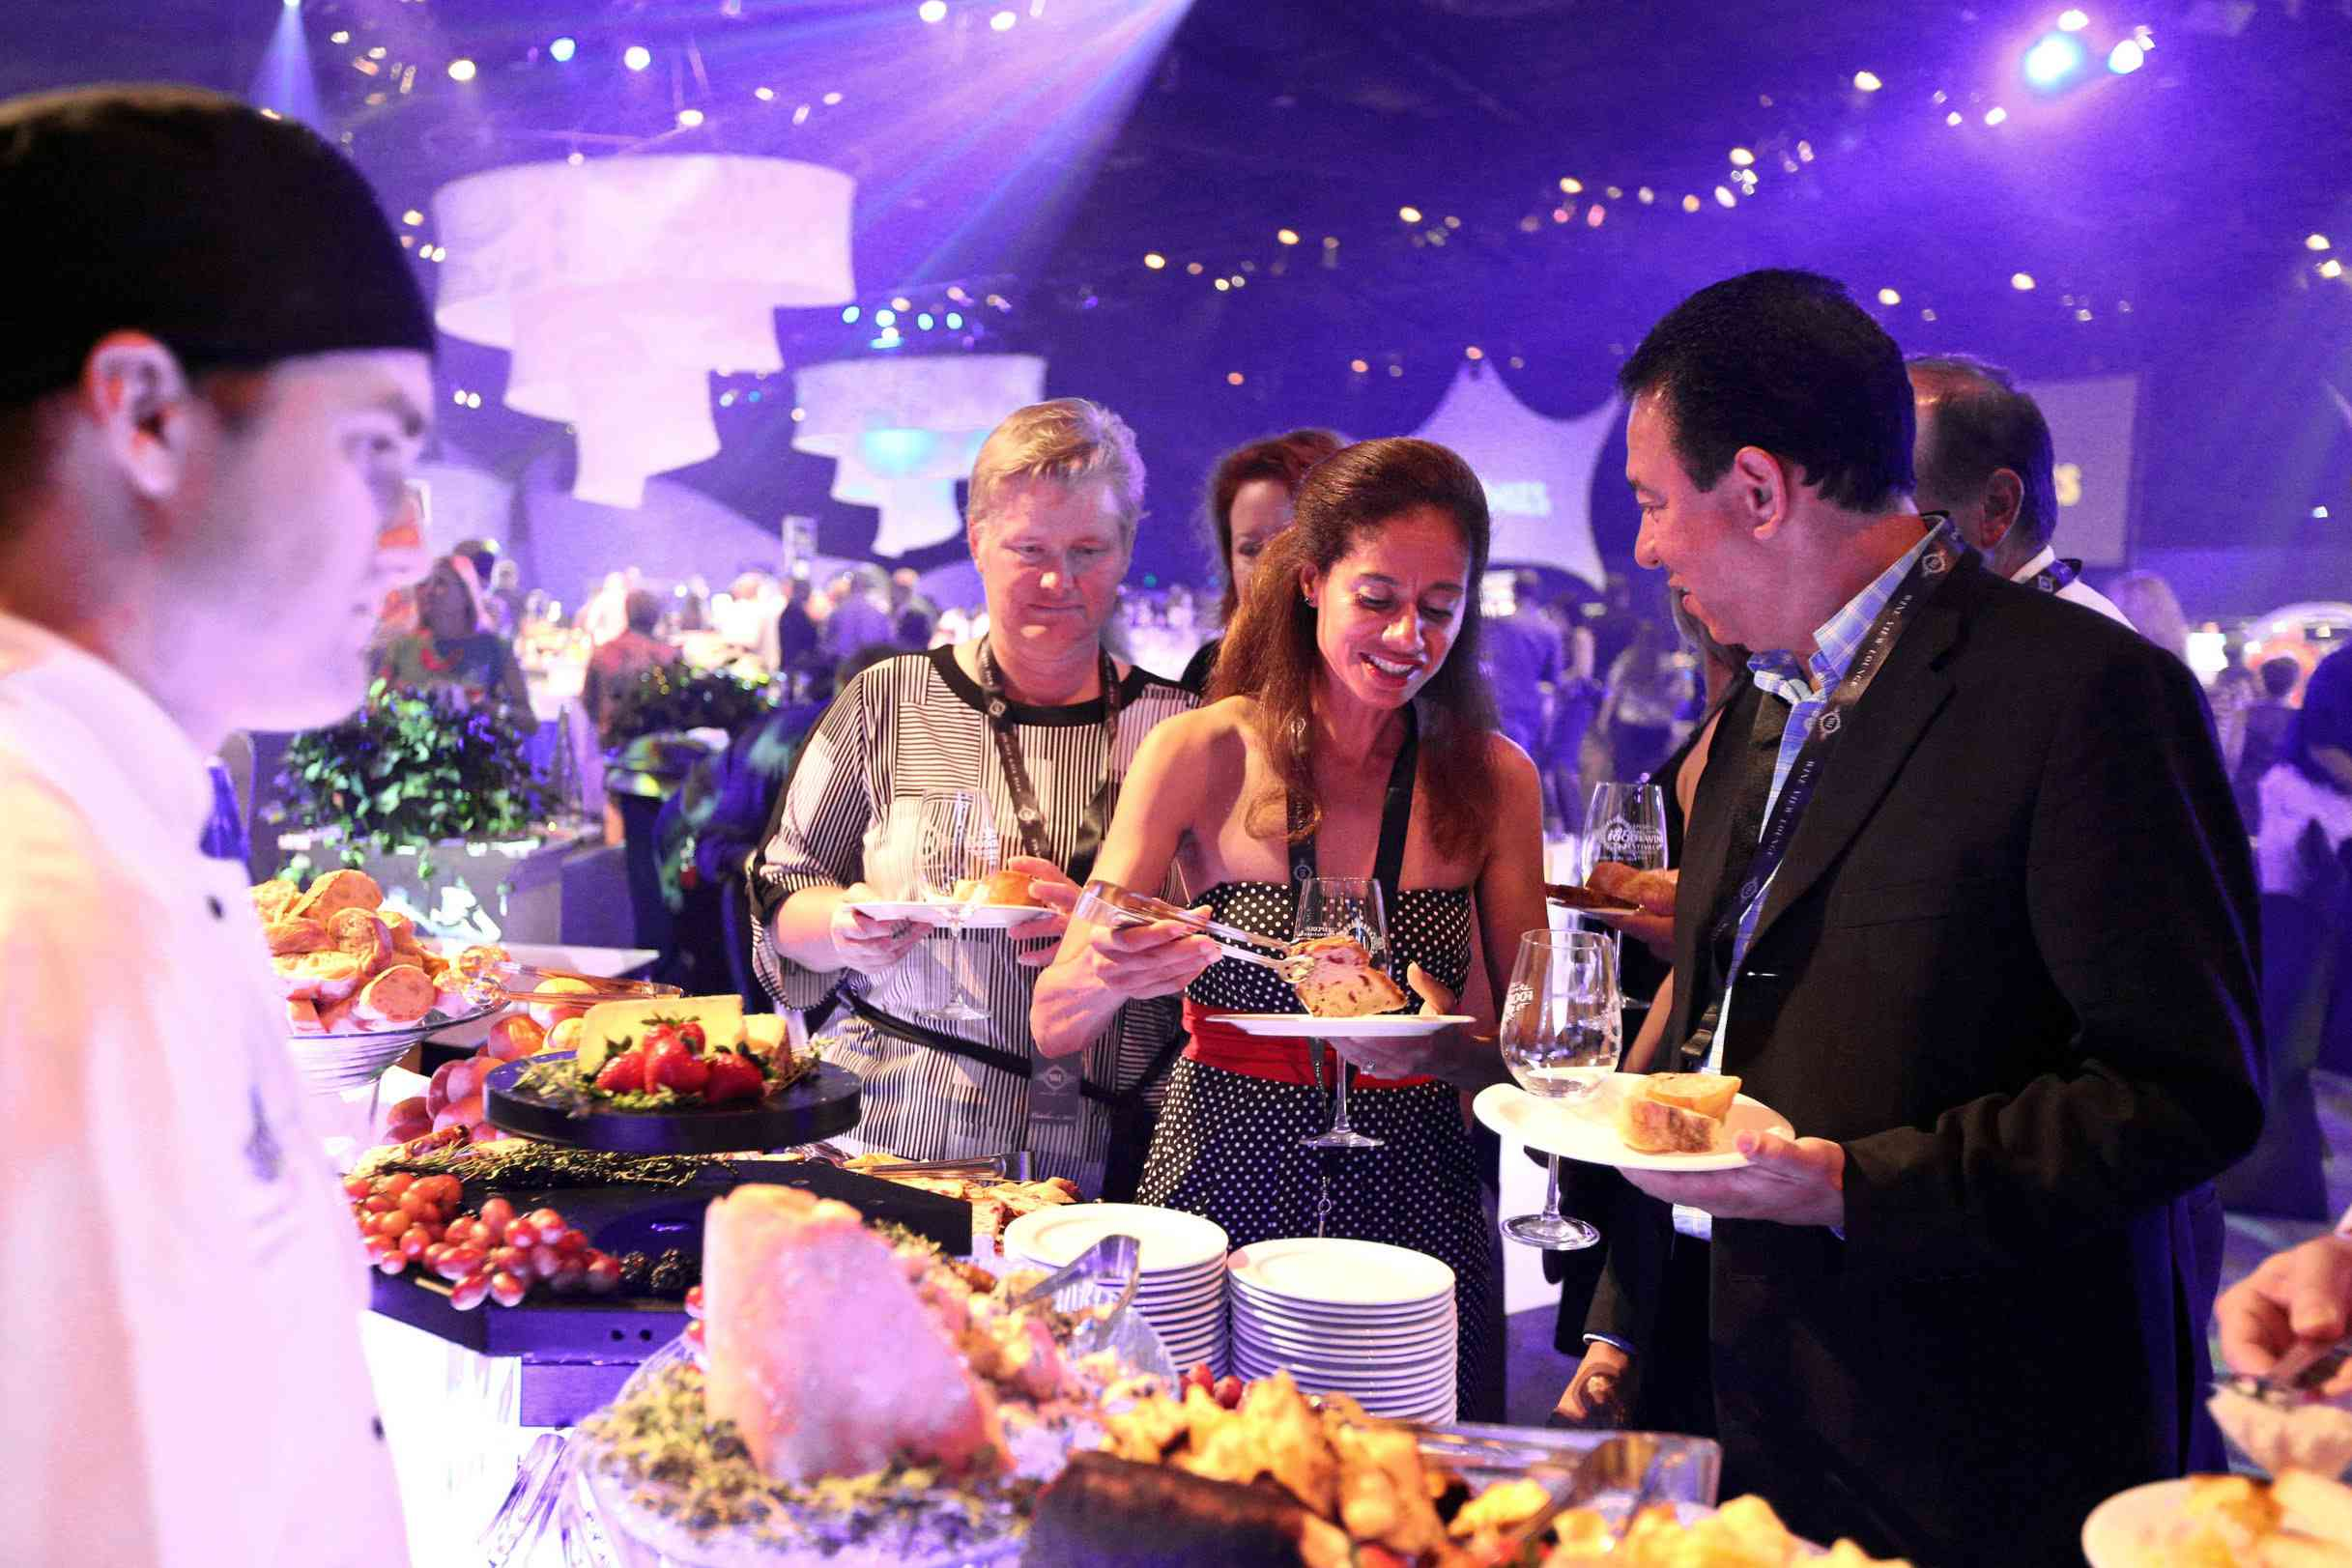 Party for the Senses during the Epcot International Food & Wine Festival